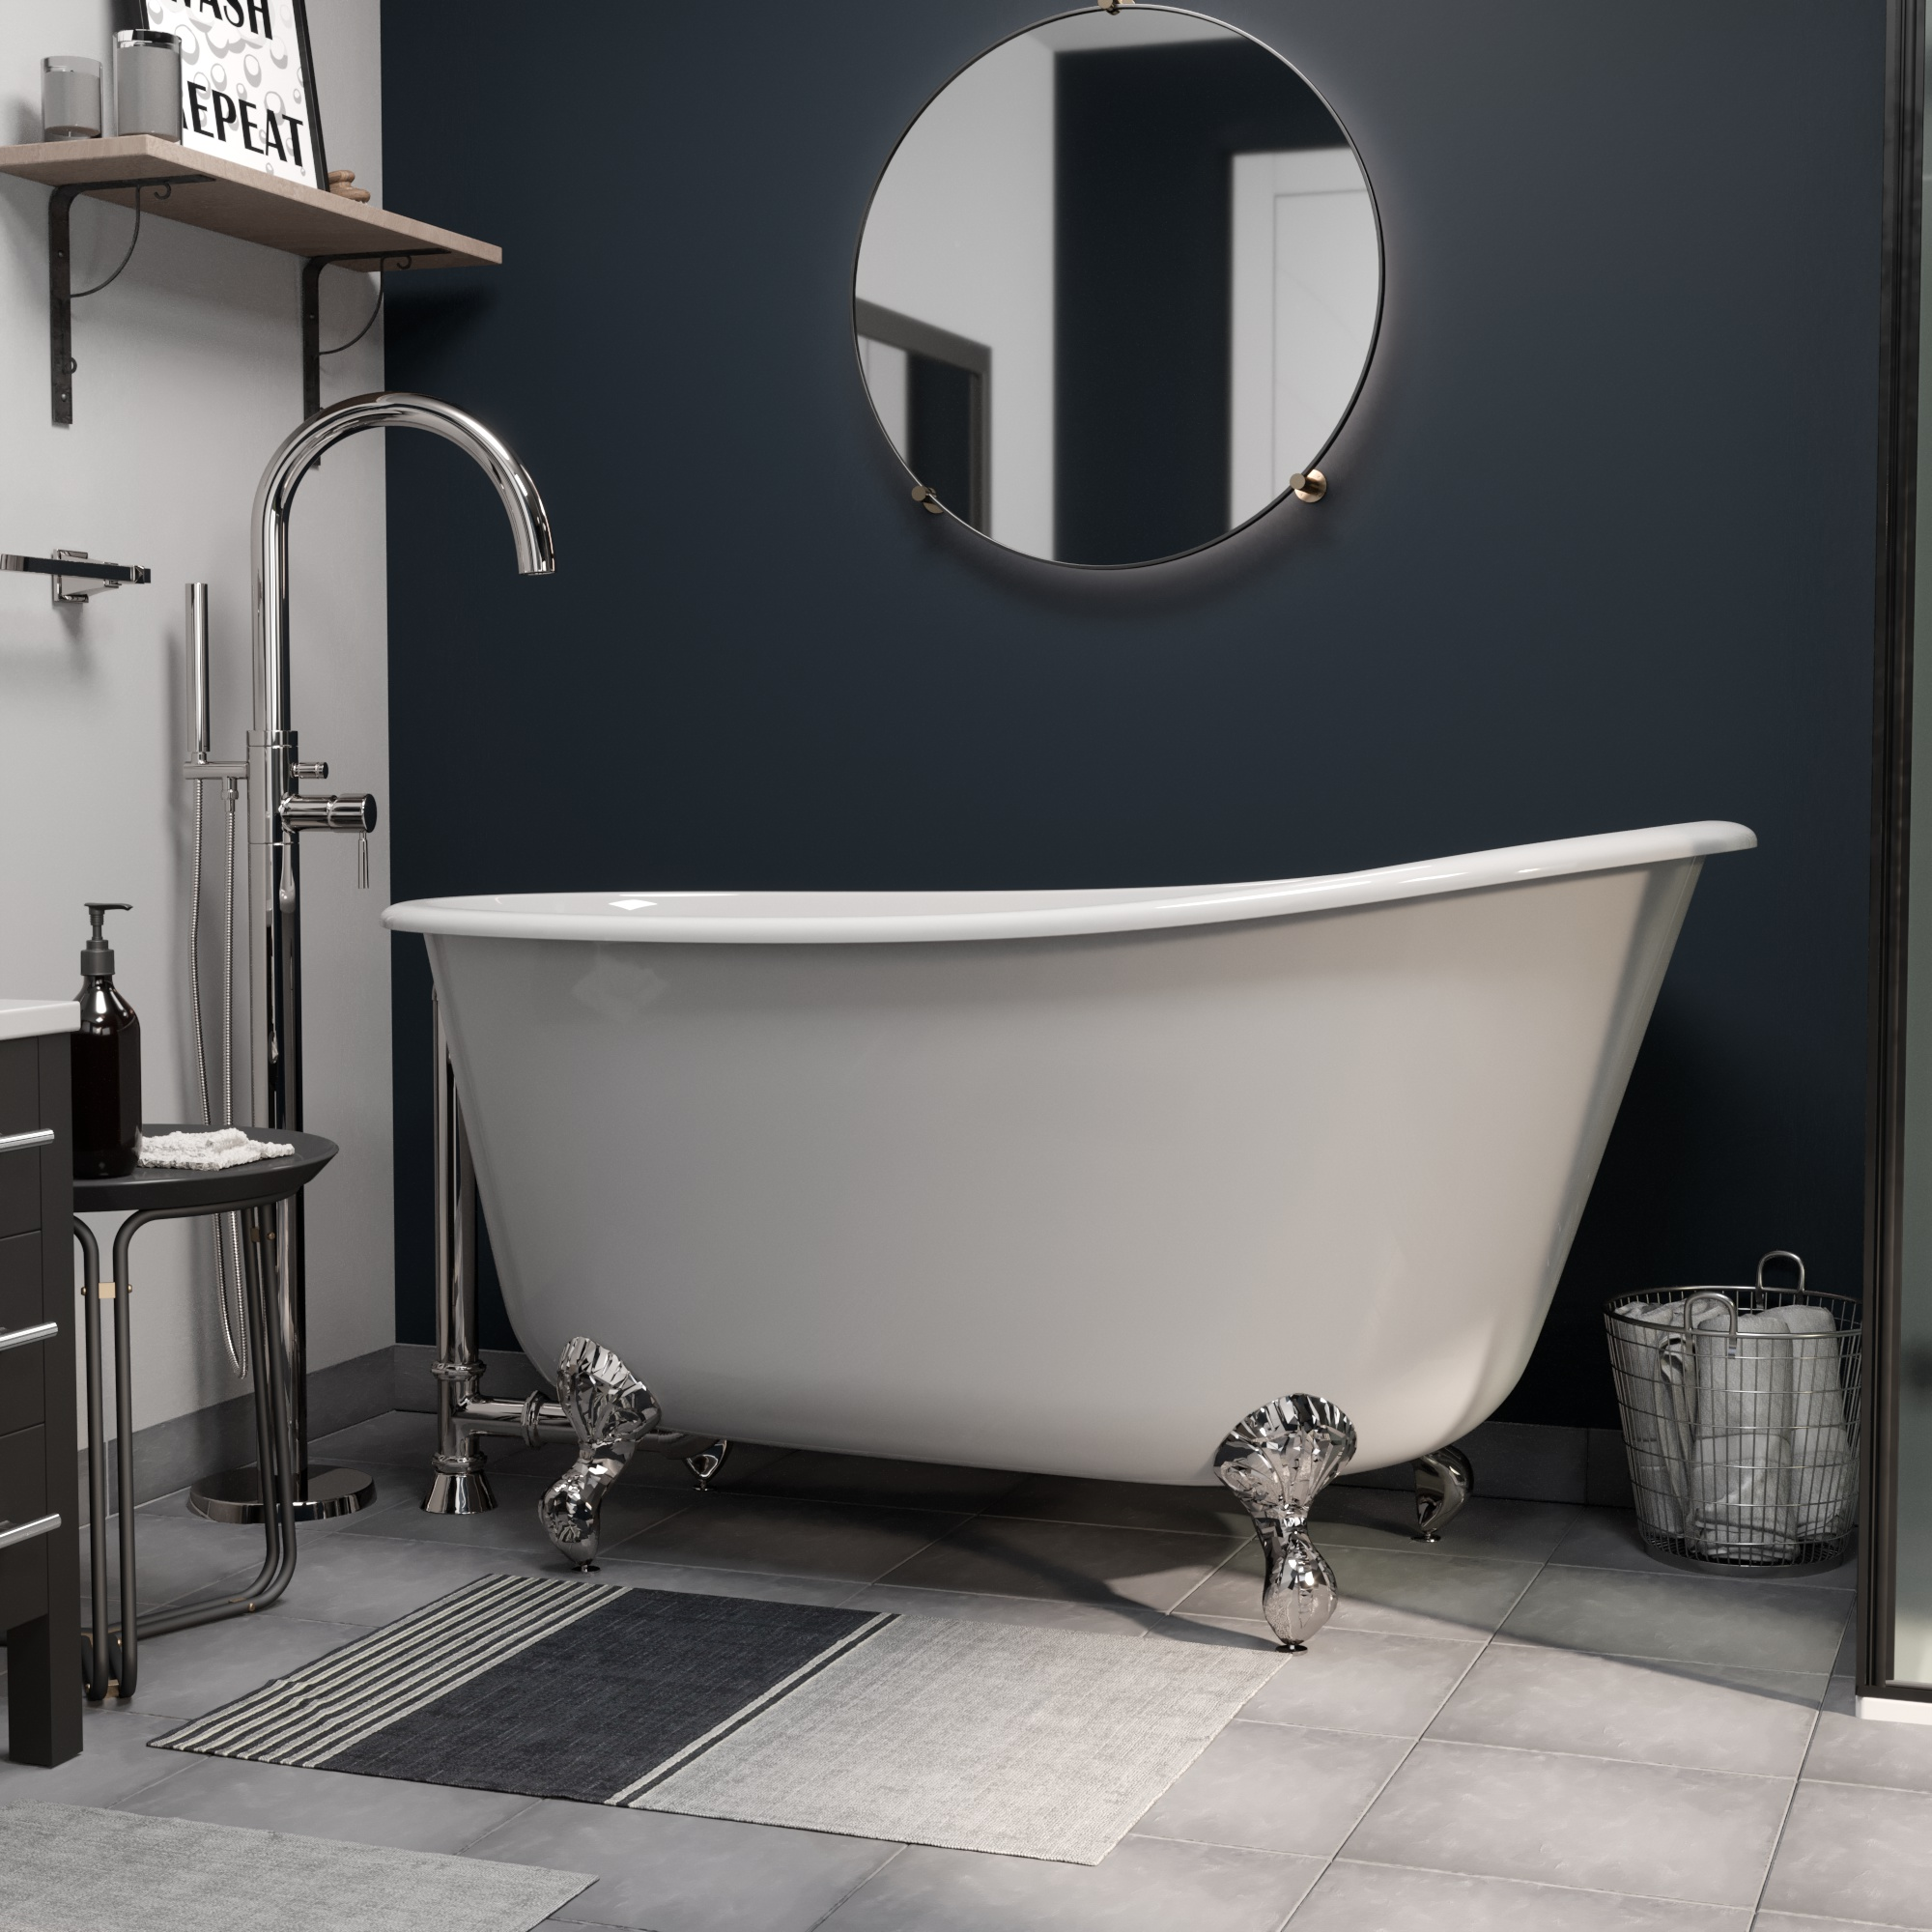 """Cast Iron Swedish Slipper Tub 58"""" X 30"""" with no Faucet Drillings and Complete Polished Chrome Modern Freestanding Tub Filler with Hand Held Shower Assembly Plumbing Package"""